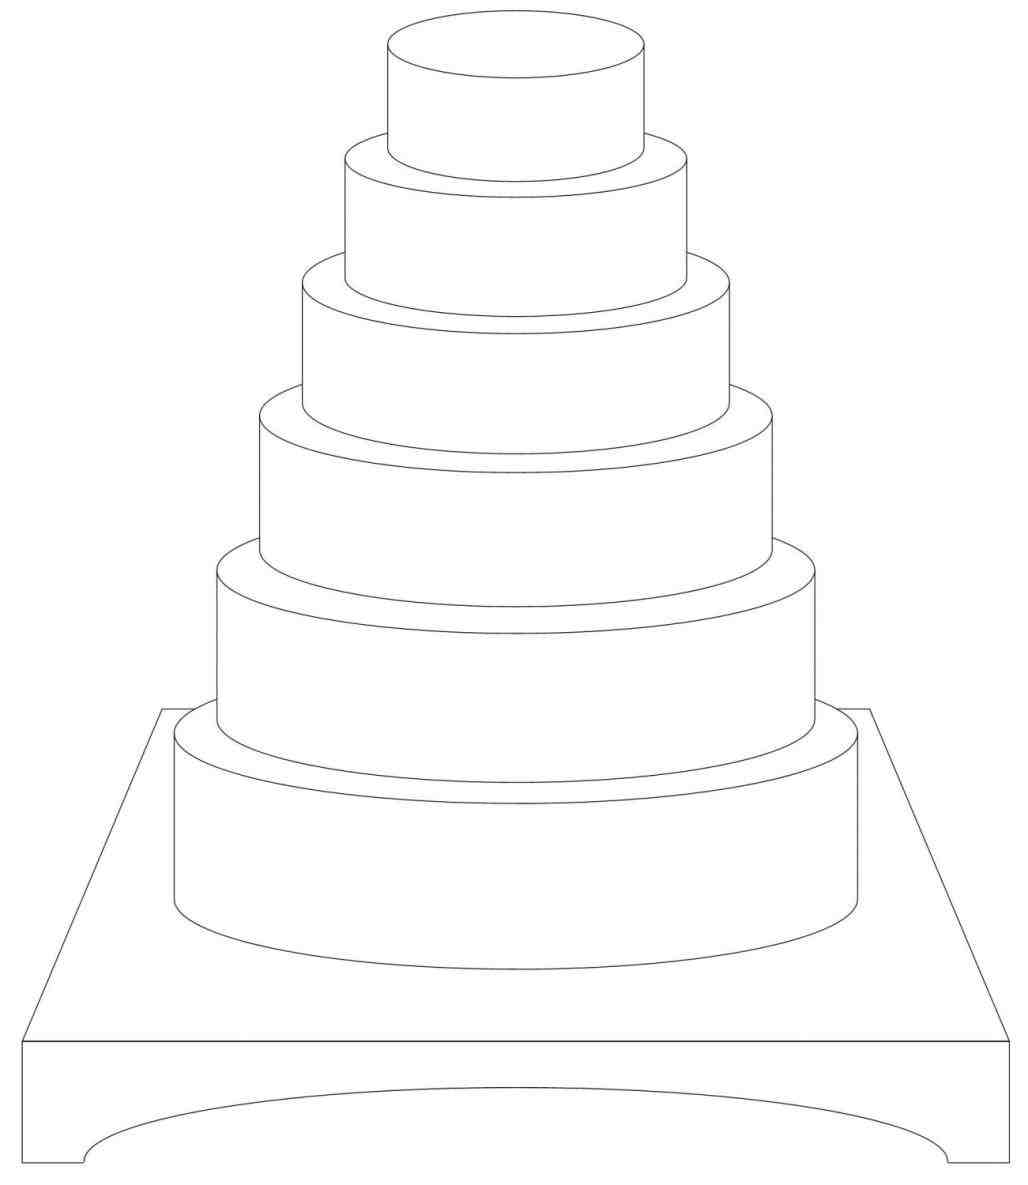 1028x1185 Wedding Cake Drawing Template Box Sketch Donut Forget Details